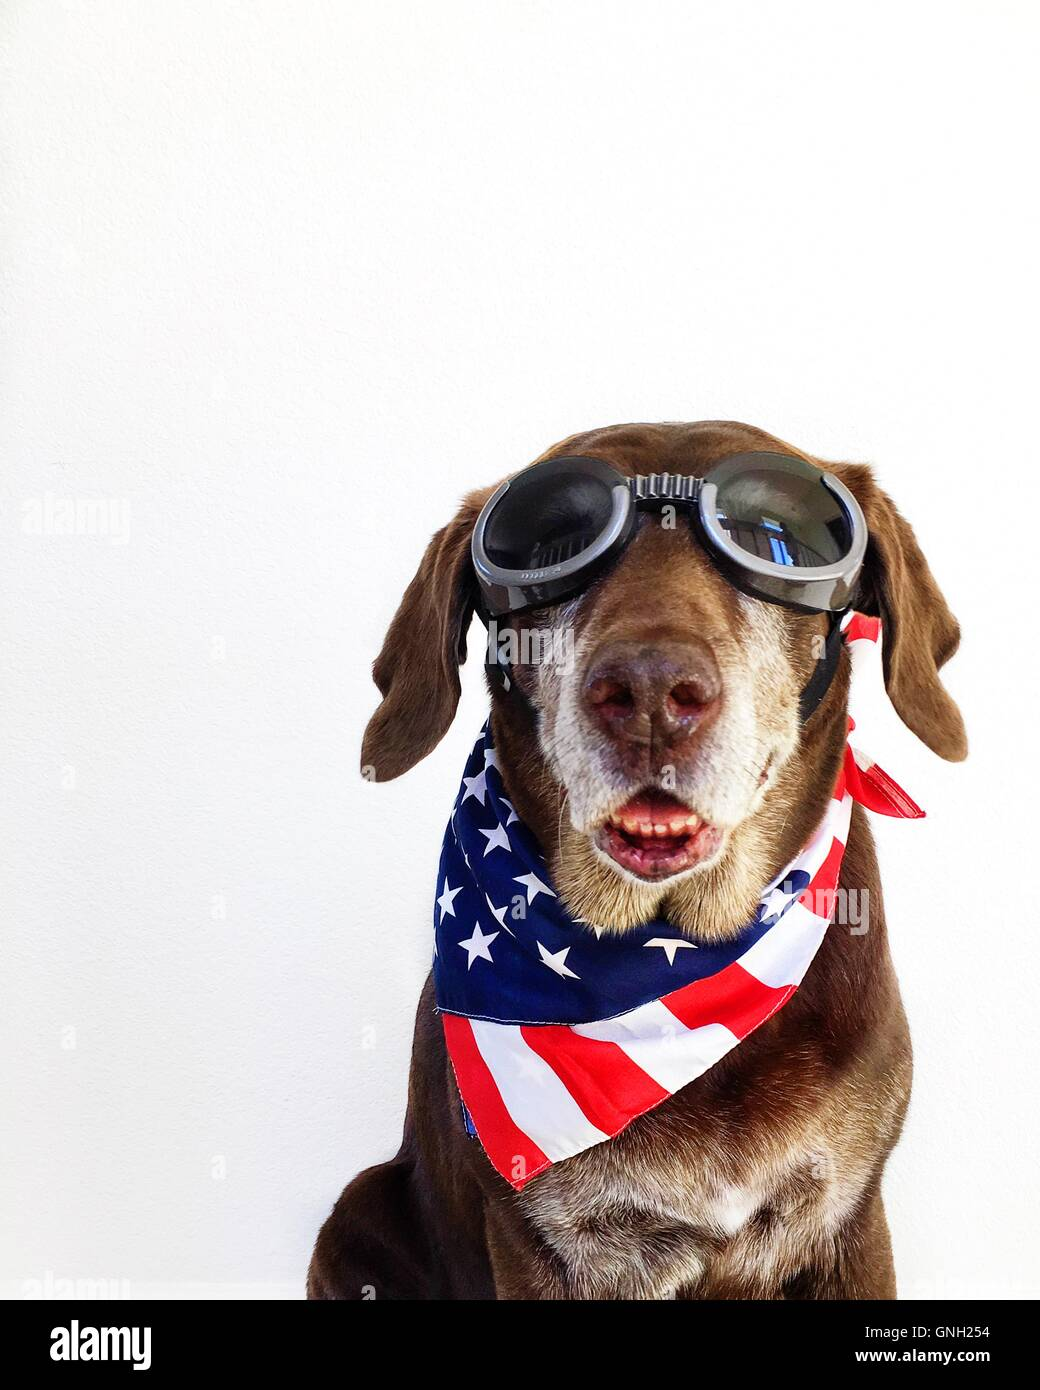 Portrait of a Chocolate Labrador retriever Dog wearing goggles and stars and stripes american neckerchief - Stock Image